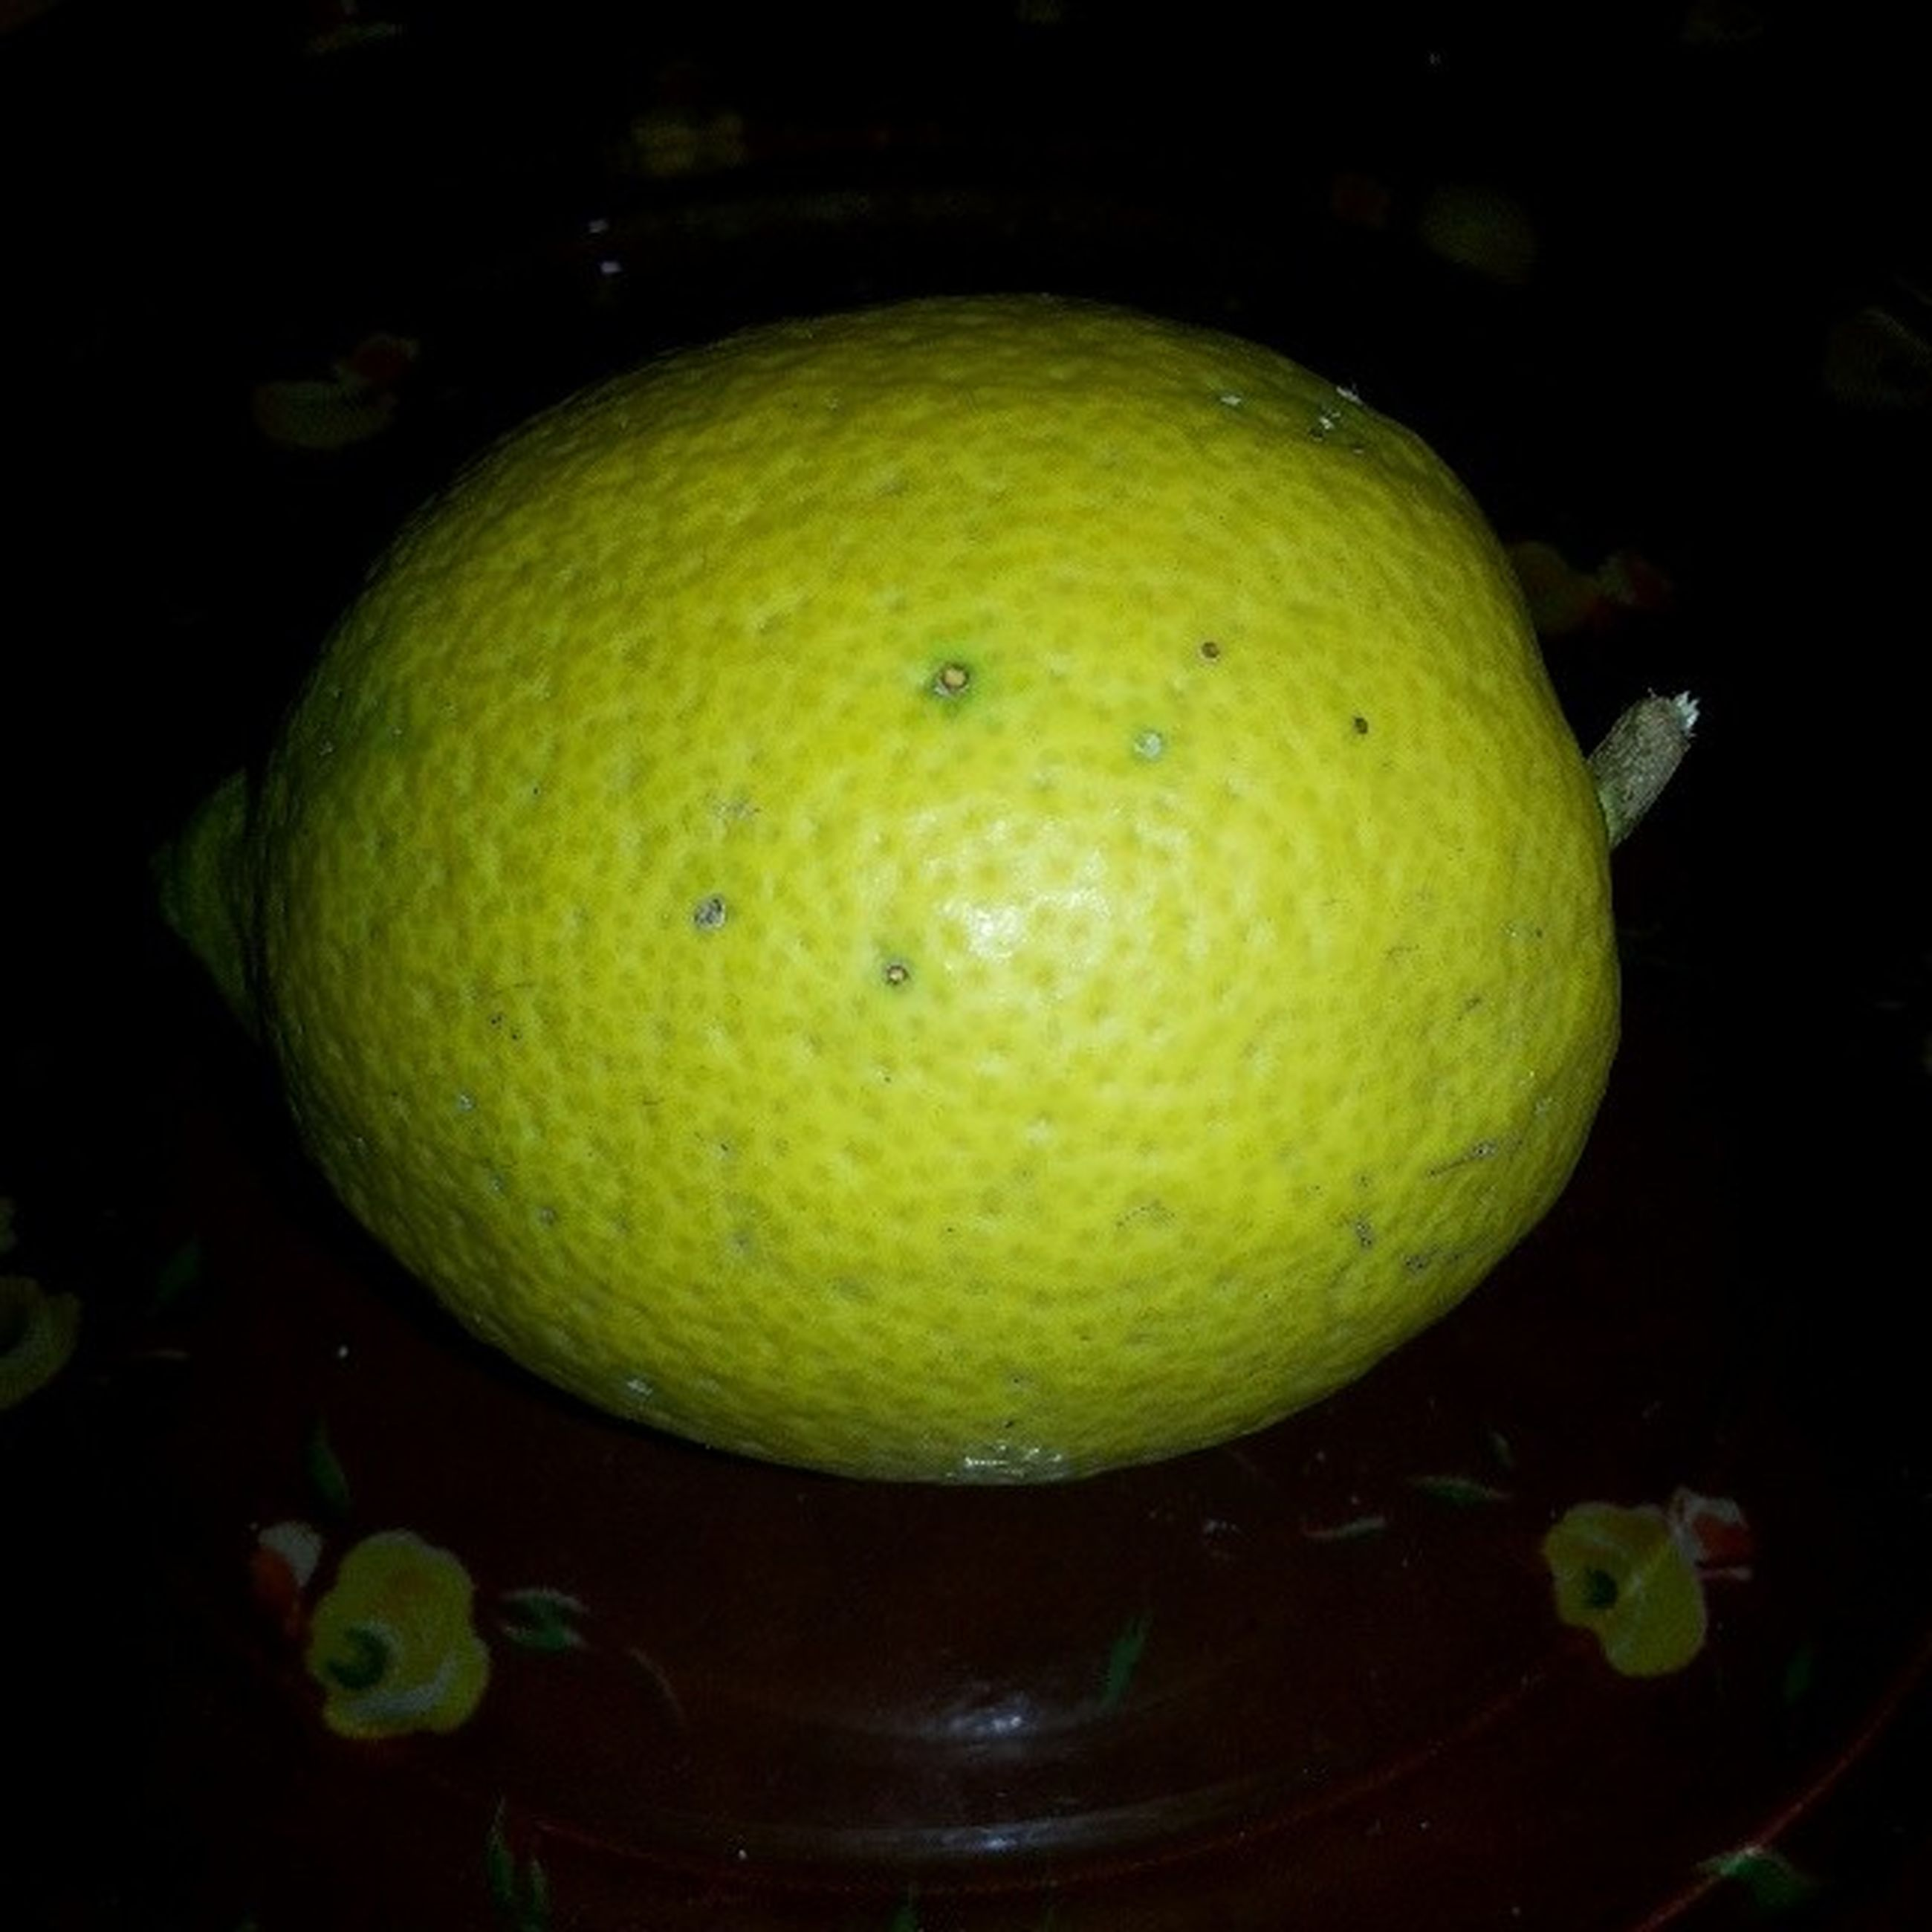 fruit, food and drink, close-up, green color, freshness, healthy eating, food, yellow, indoors, lemon, leaf, citrus fruit, no people, night, focus on foreground, still life, apple, growth, nature, organic